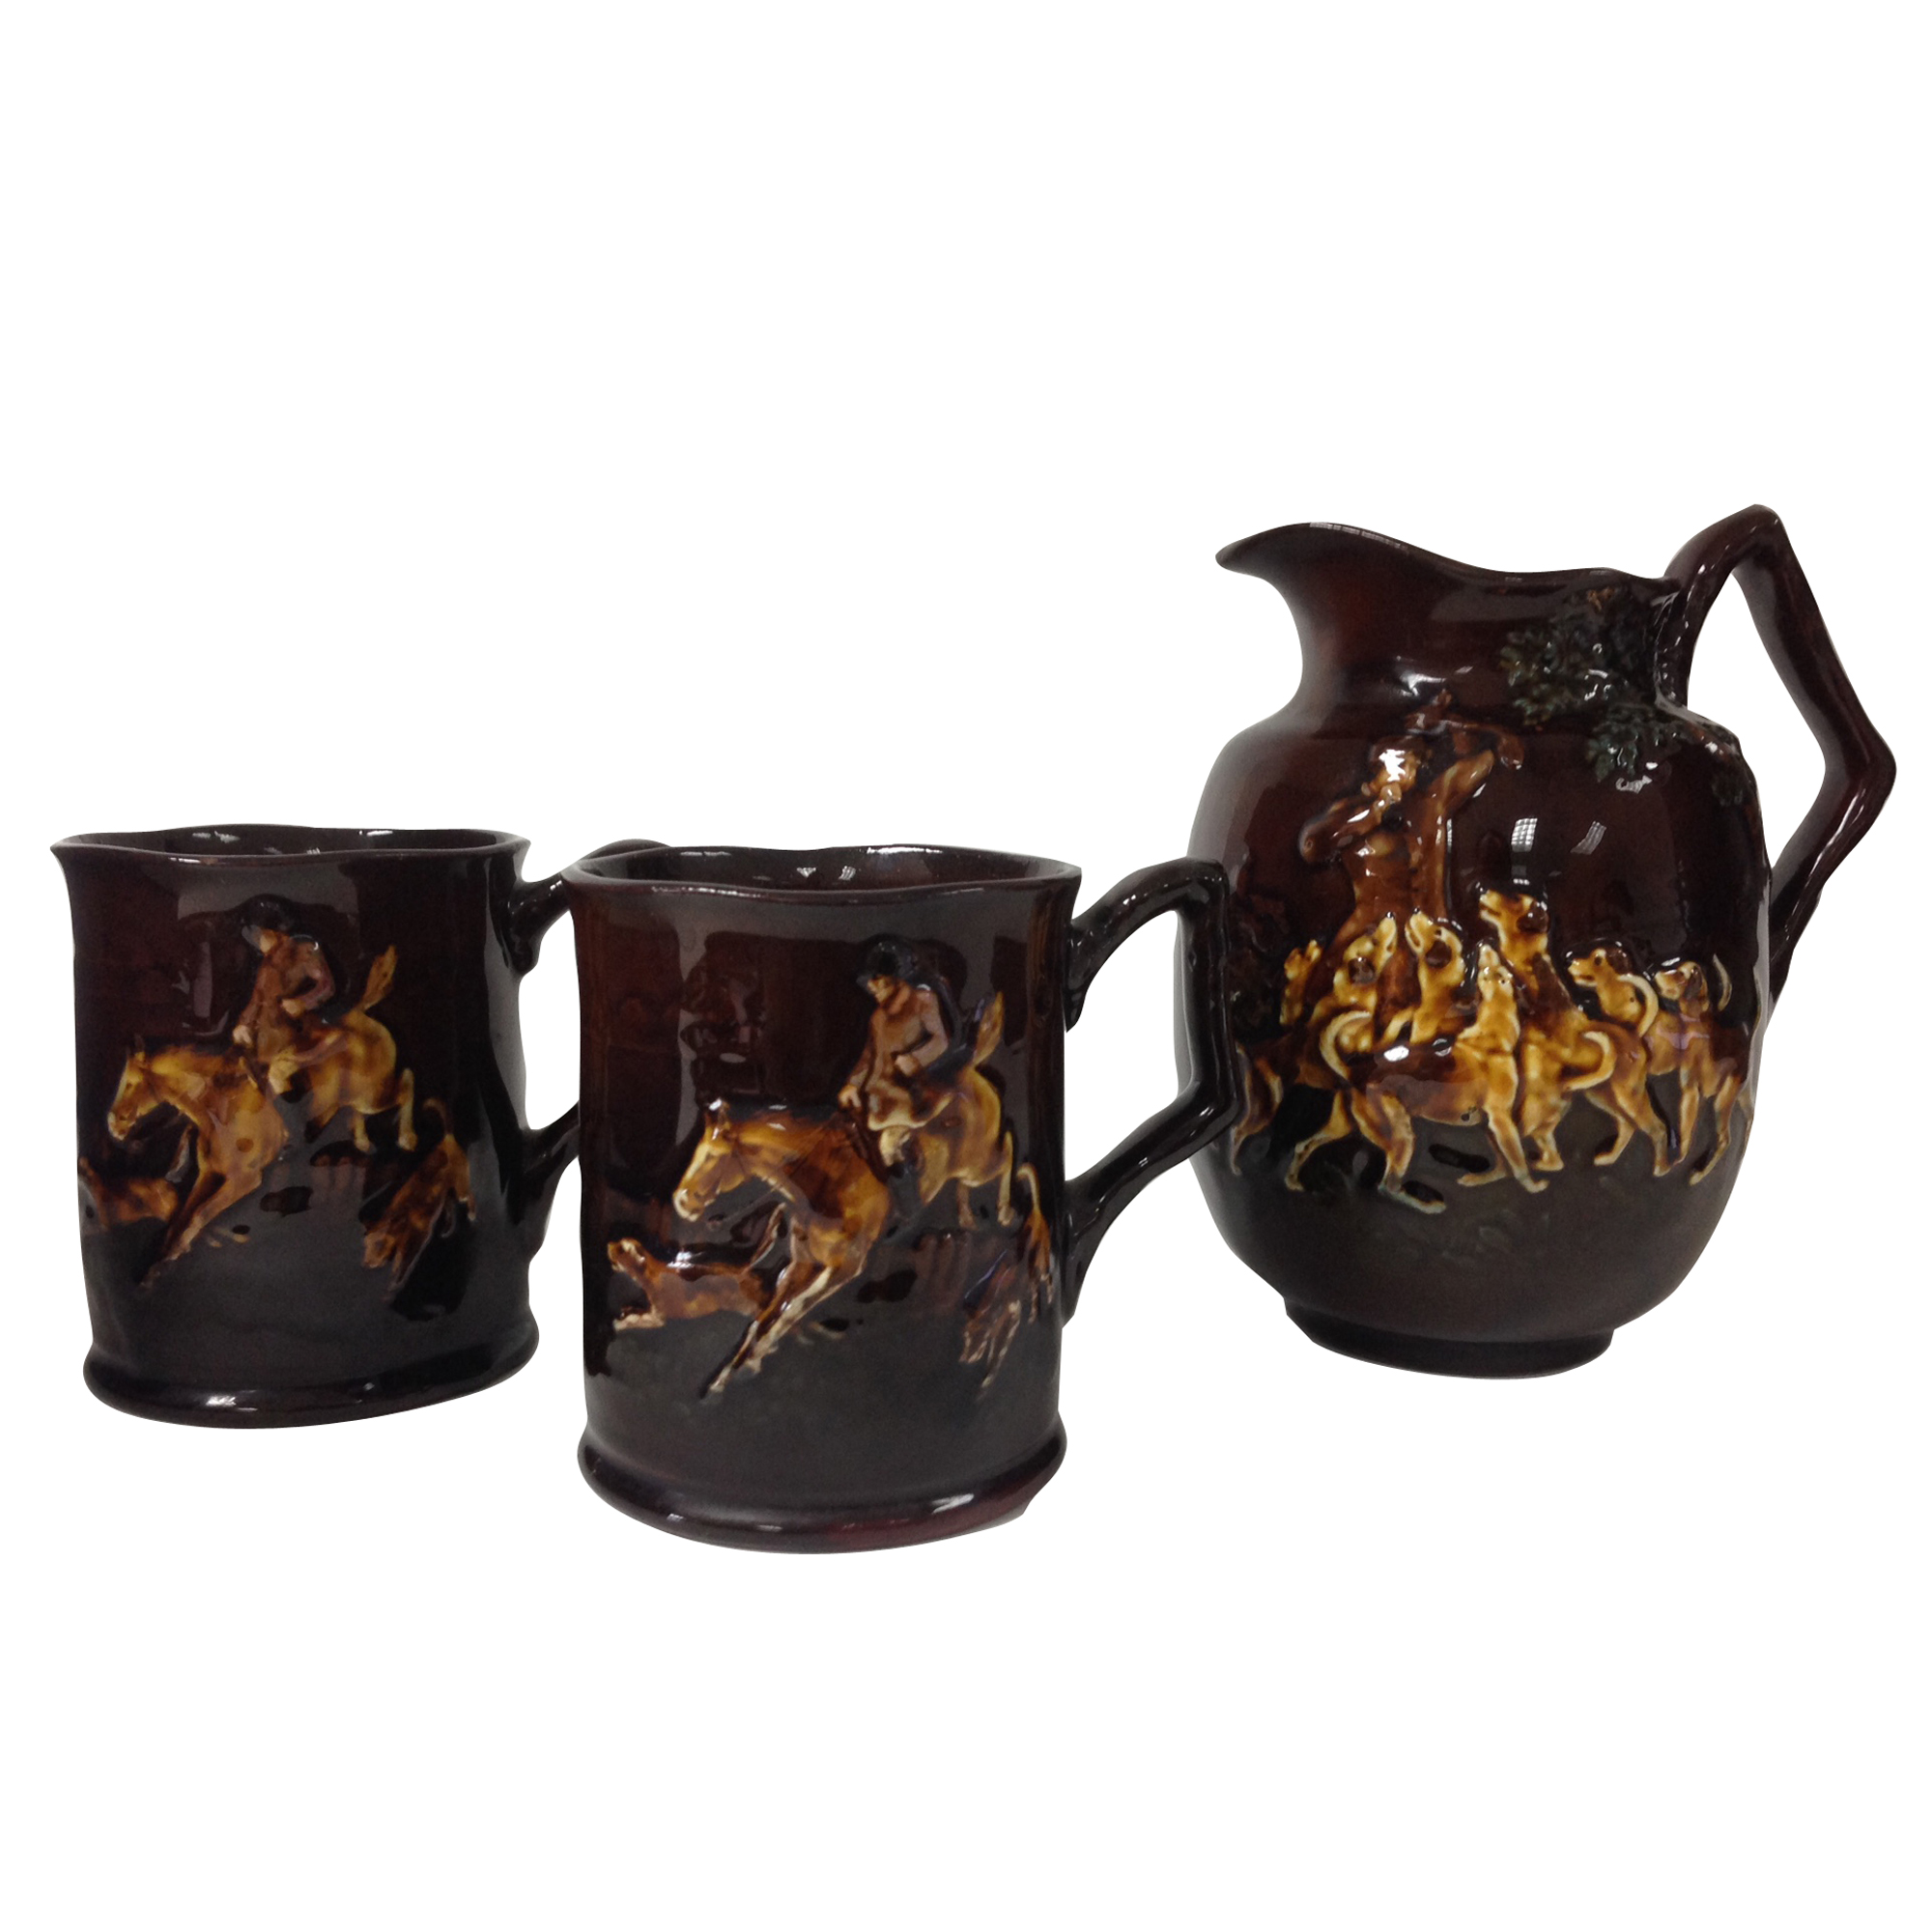 Kingsware Hunting 3 pc. Set Pitcher with tankards - Royal Doulton Kingsware